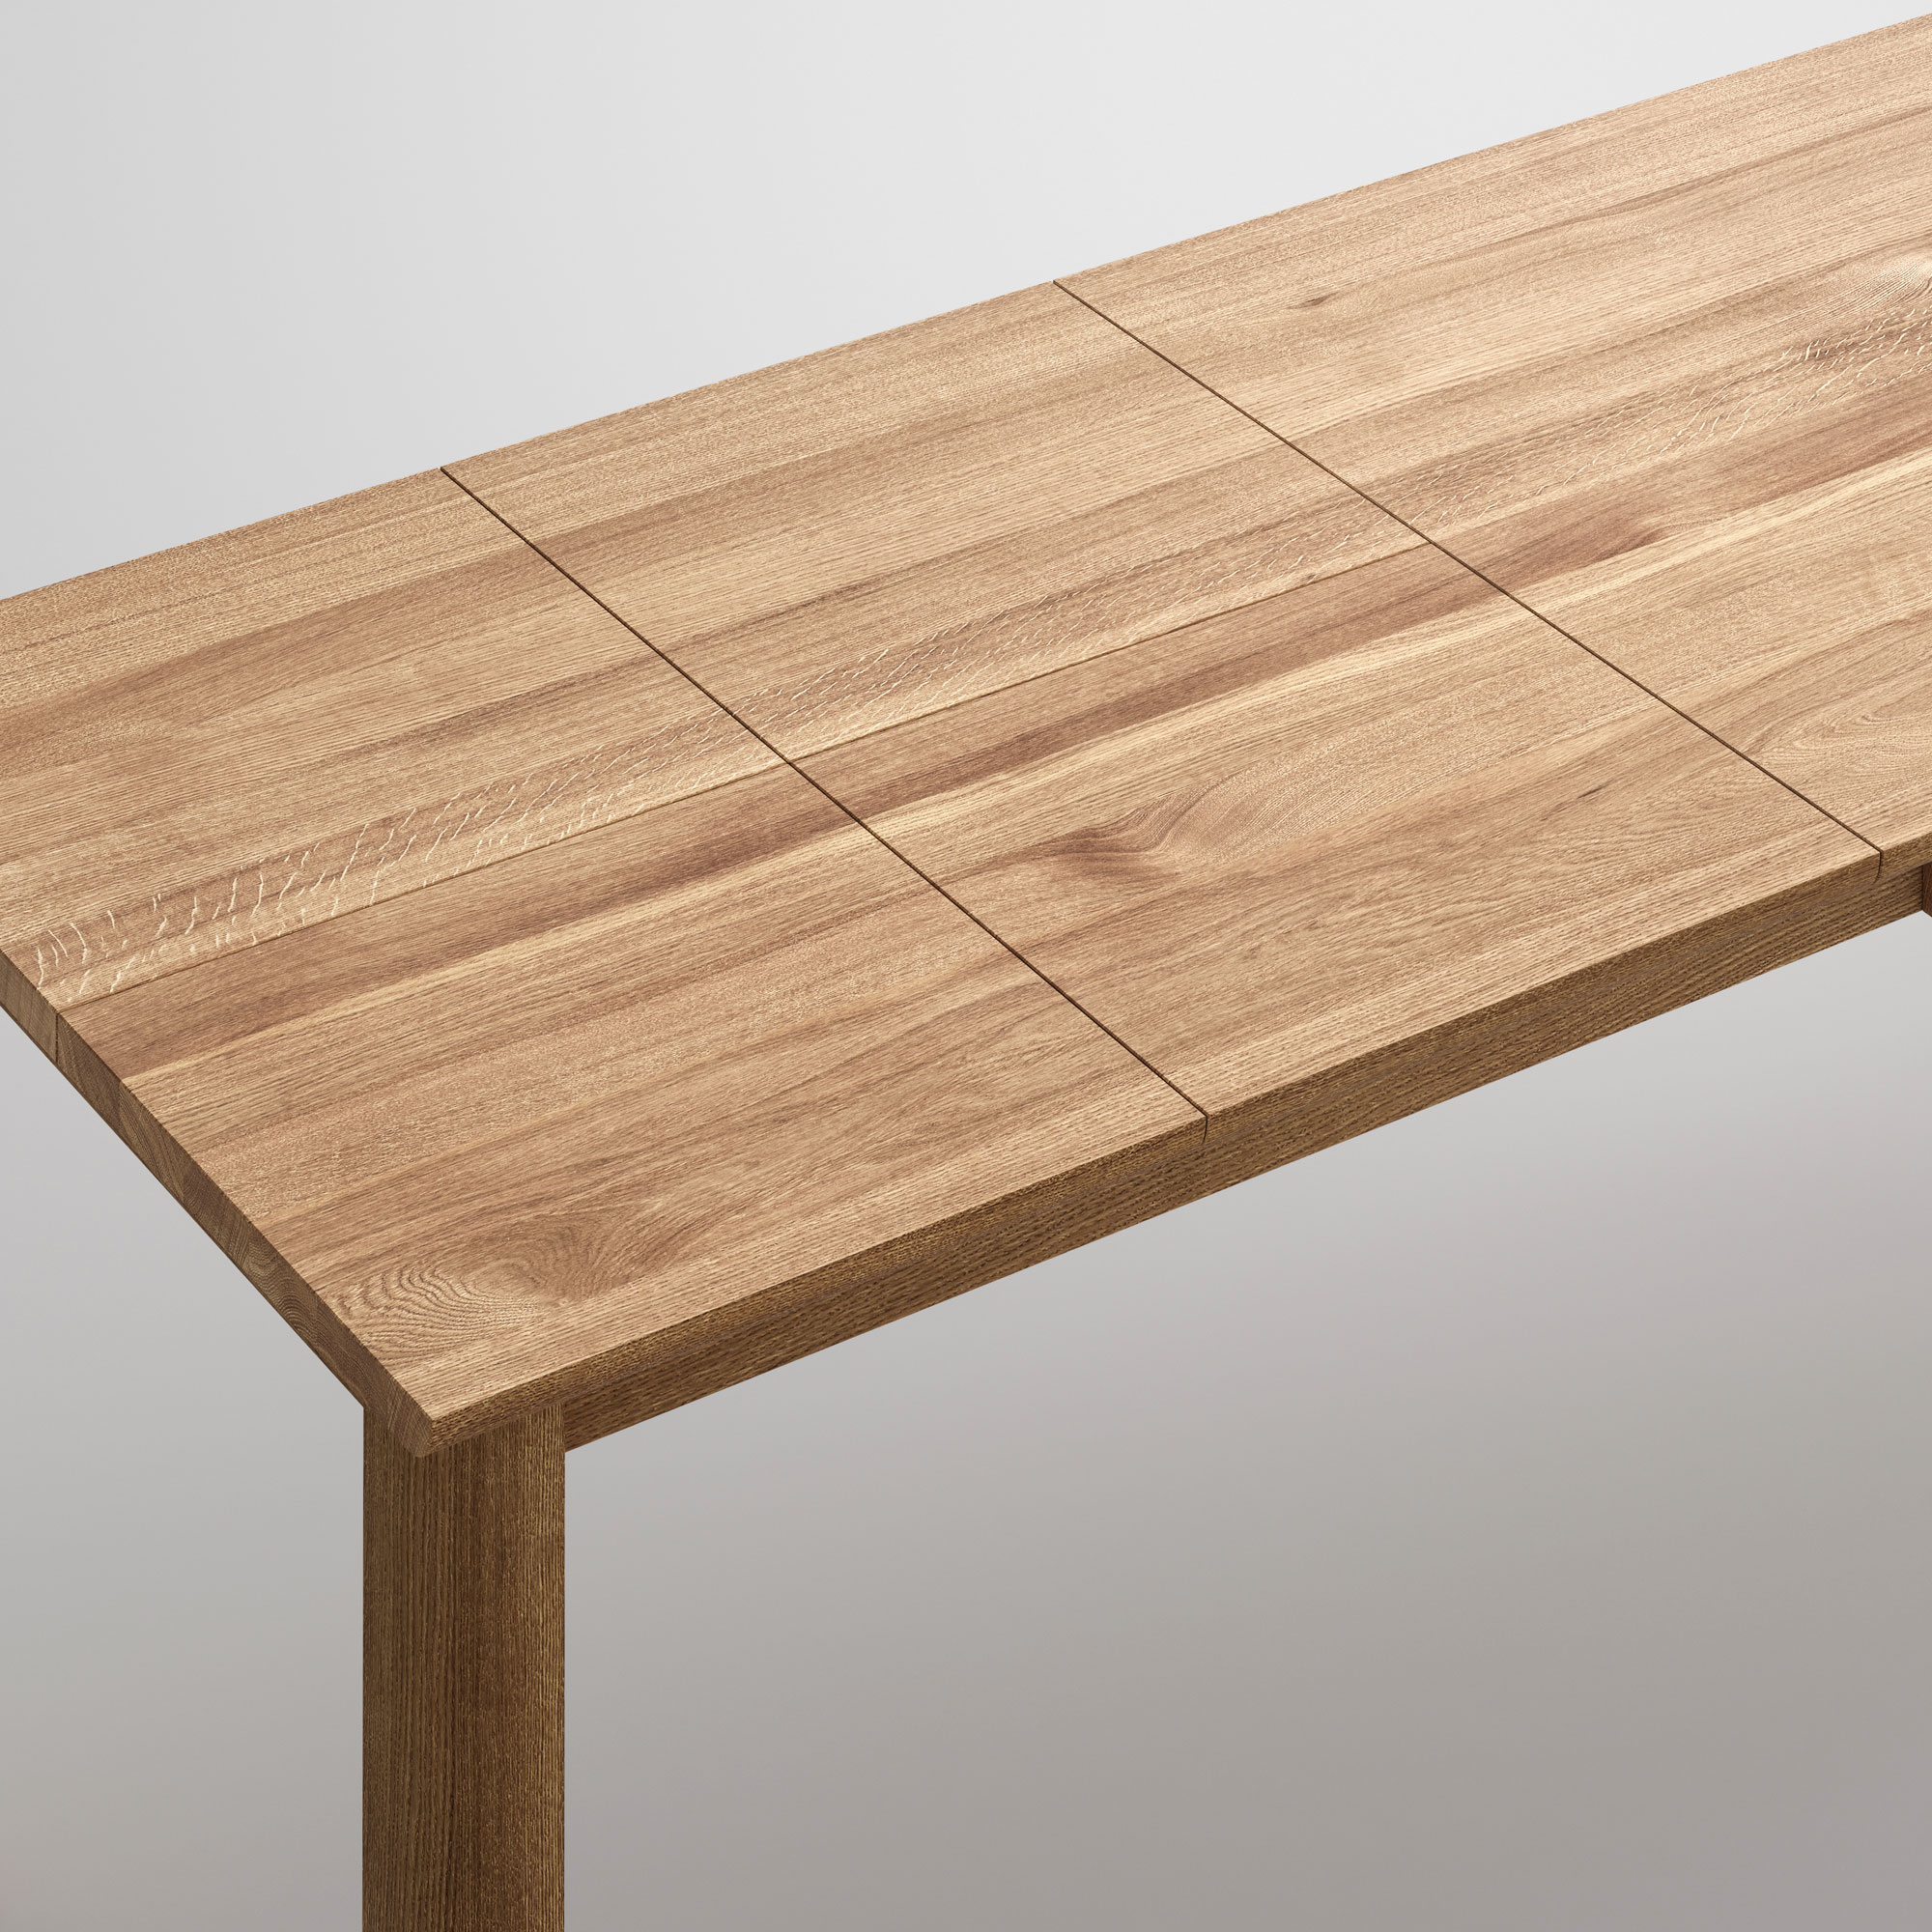 Extendable Dining Table VIVUS BUTTERFLY Cam4-SP2 custom made in solid wood by vitamin design